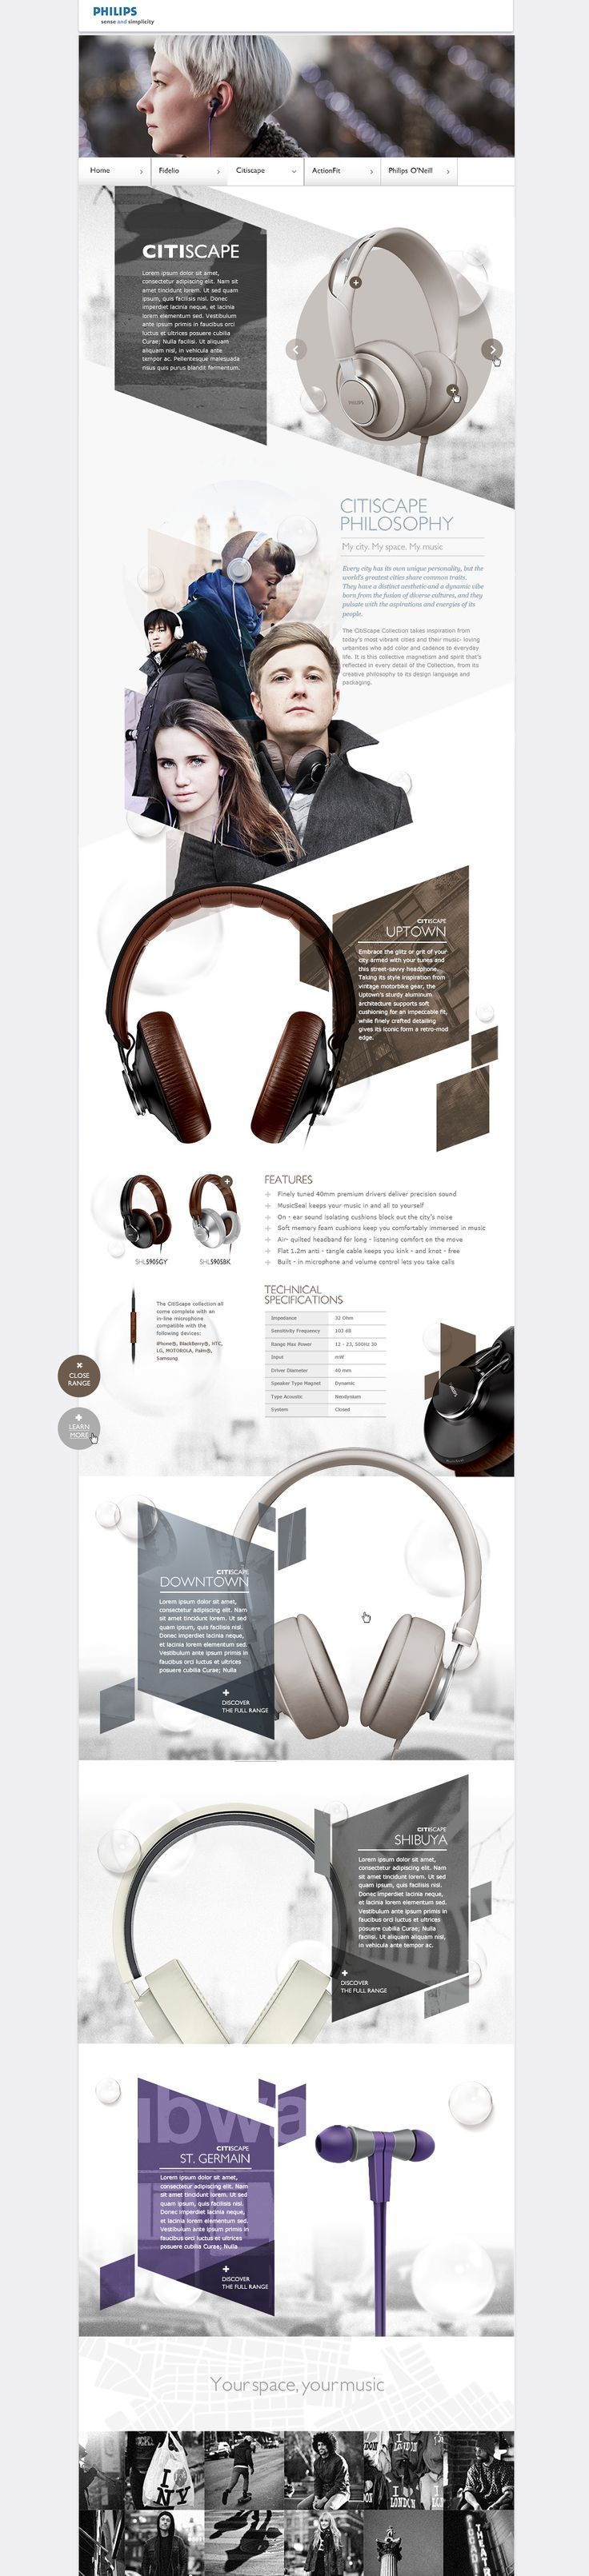 Philips site design. Awesome use of geometric design - the modern vibes go perfectly in the audio technology context.